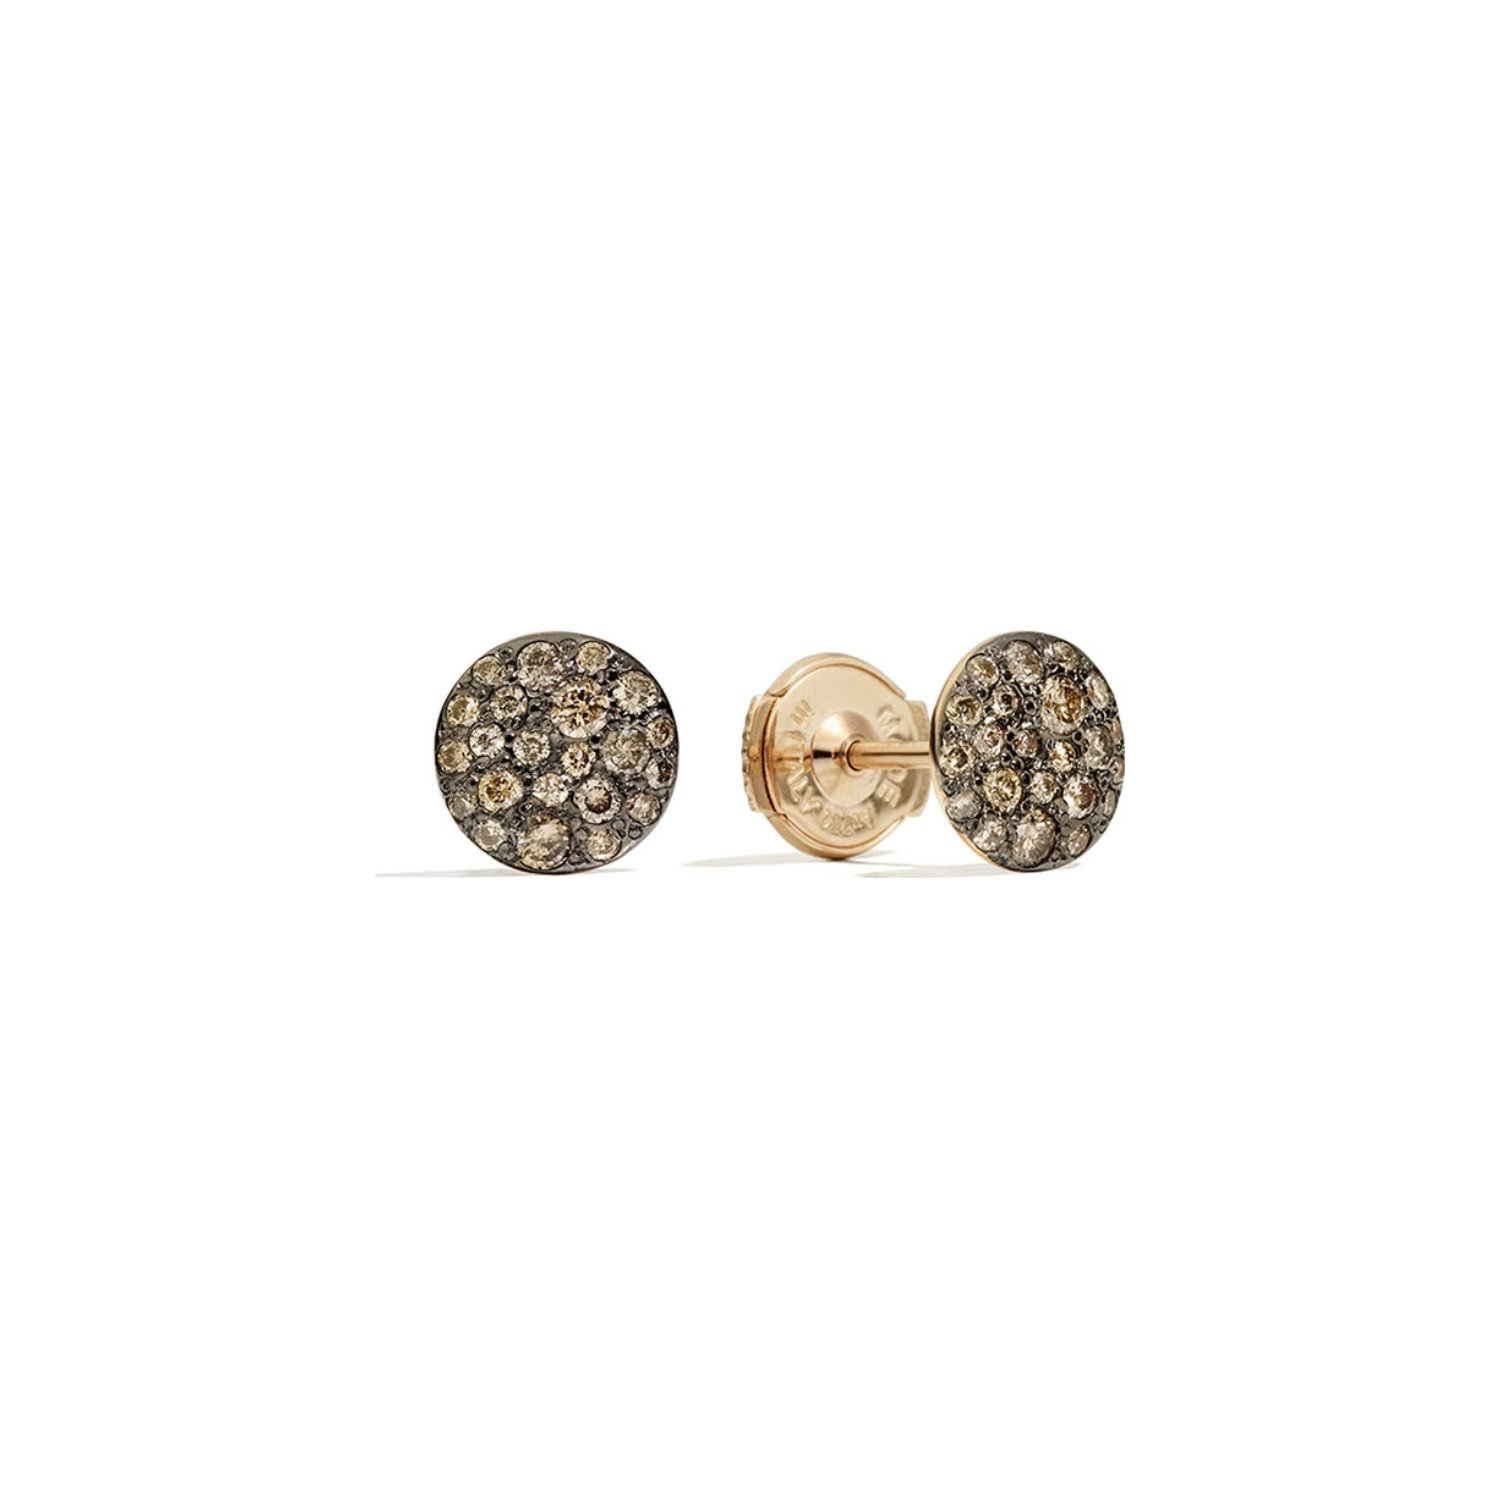 Boucles d'oreilles Pomellato Sabbia en or rose et diamants bruns